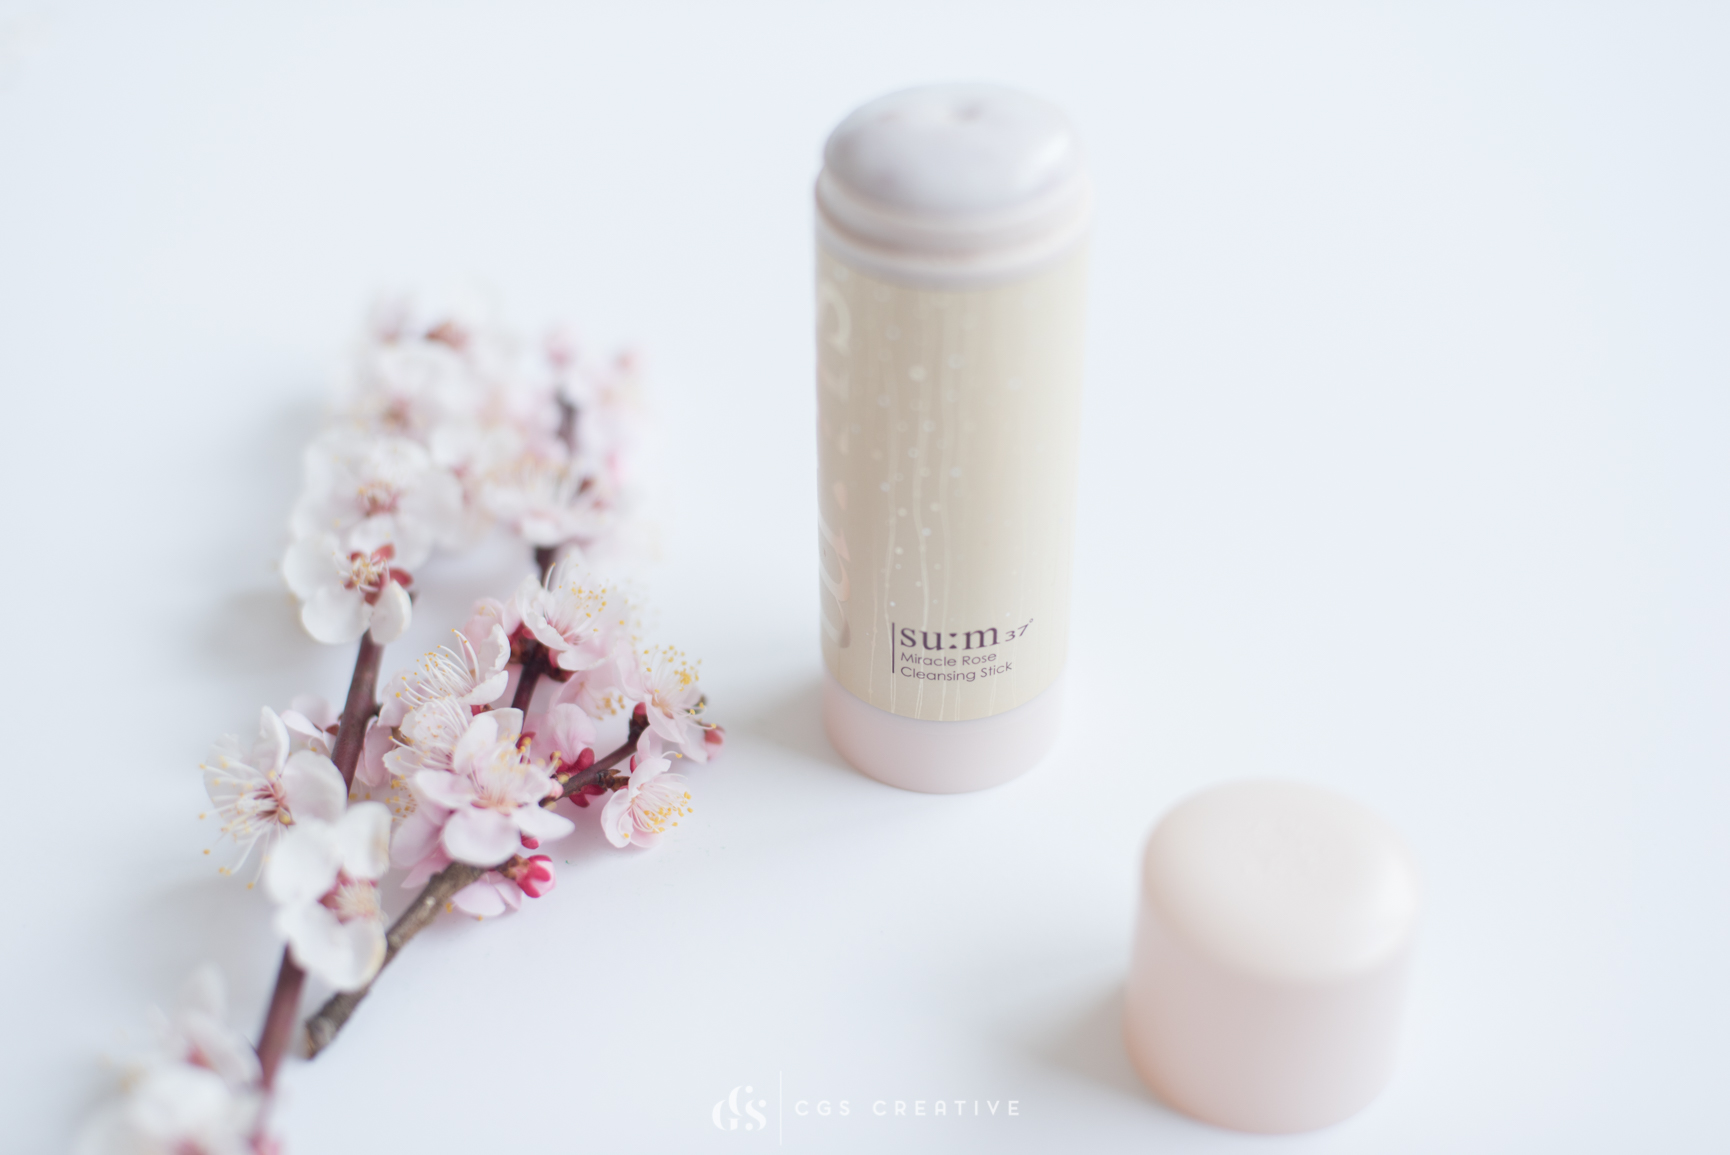 SUM-37 Miracle Rose Cleansing Stick Korean Beauty Review by Roxy Hutton CGScreative (4 of 7).JPG